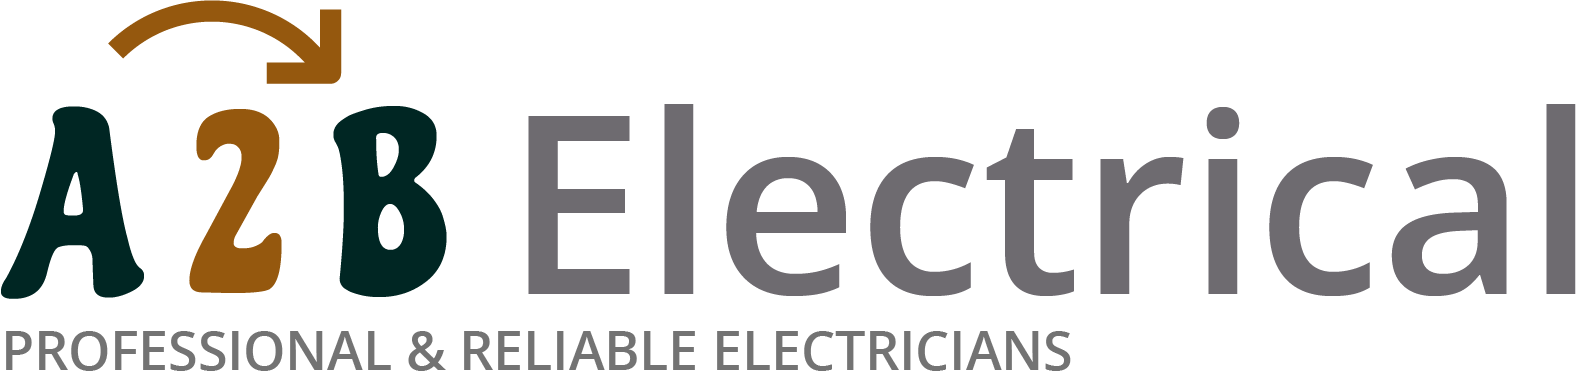 If you have electrical wiring problems in Brightlingsea, we can provide an electrician to have a look for you.